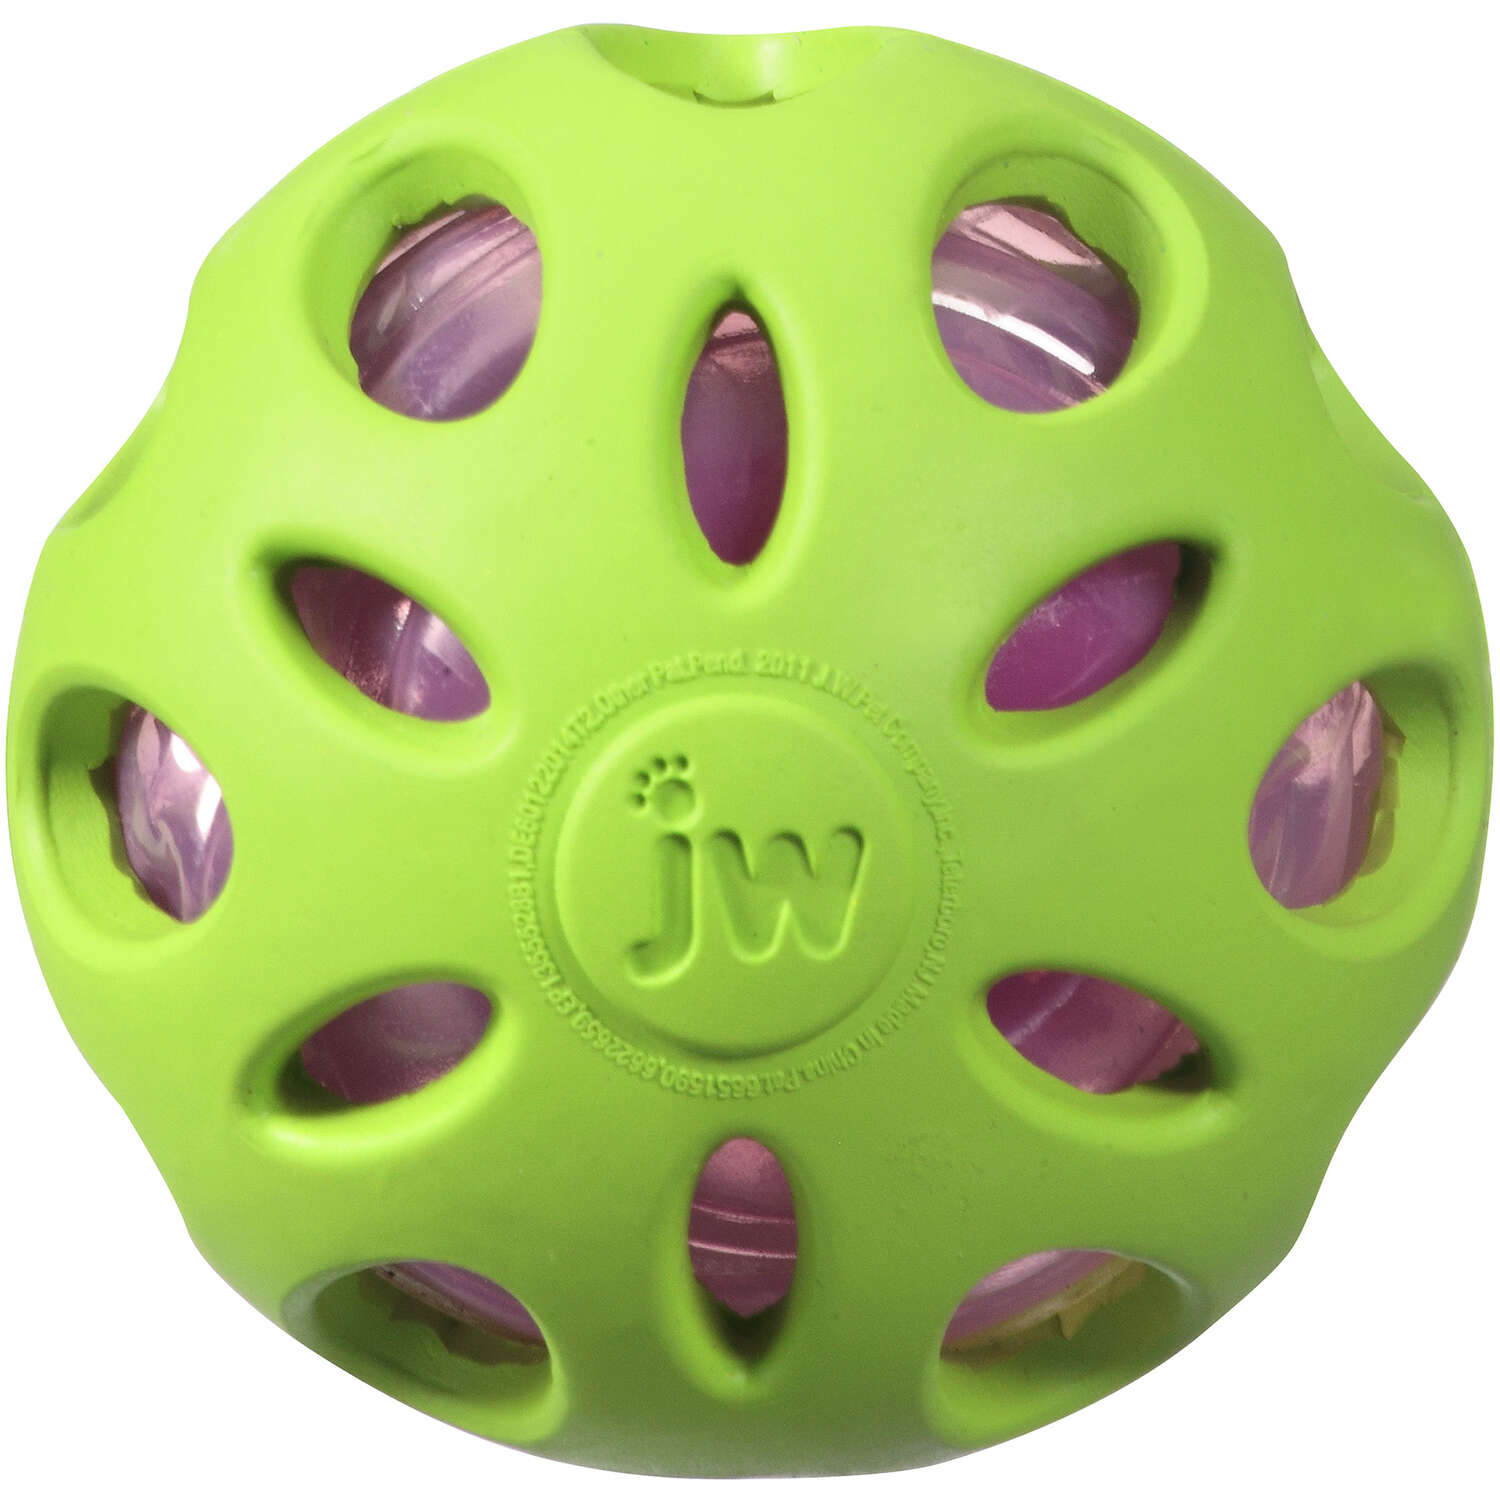 JW Pet  Crackle Heads  Assorted  Crackle Heads Ball  Rubber  Dog Toy  Medium